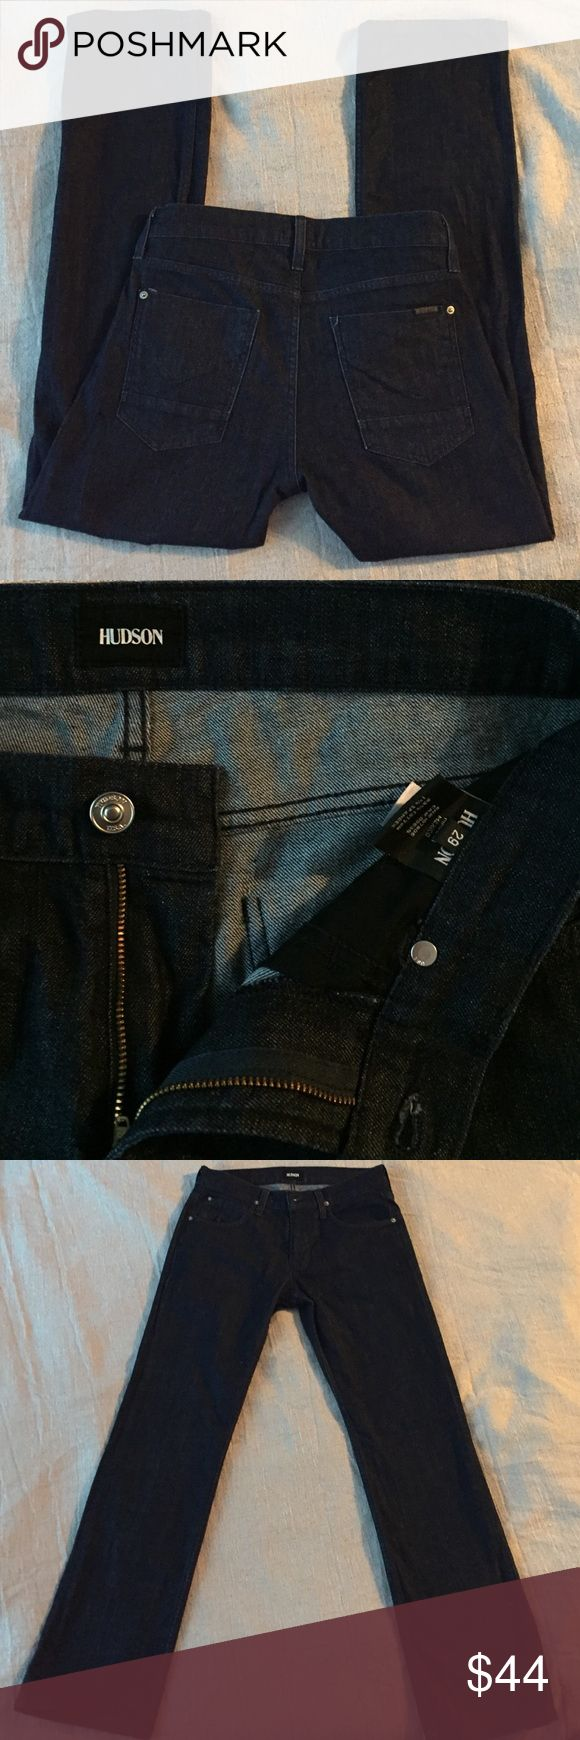 Hudson jeans Never worn/washed once Hudson jeans 29x31 (altered to 31 length) straight fit rinse wash Hudson Jeans Jeans Straight